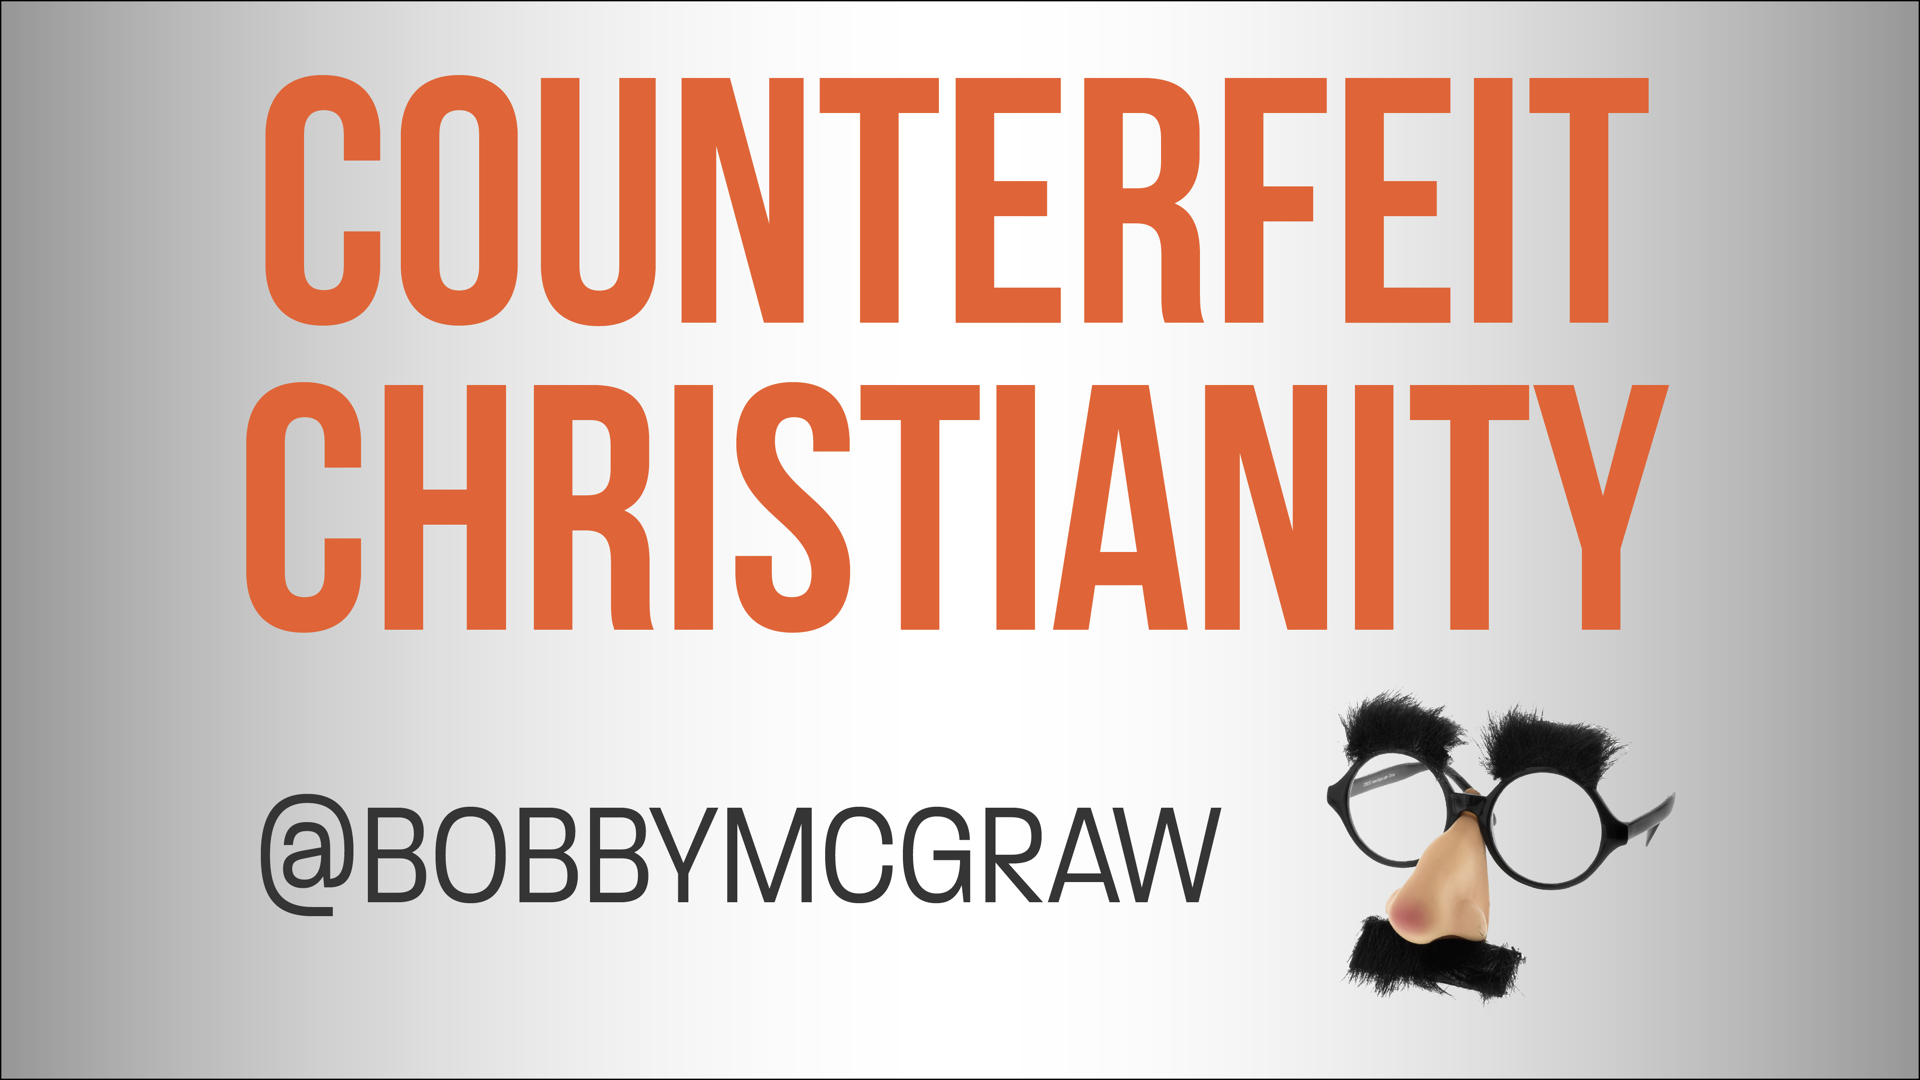 Counterfeit Christianity Image